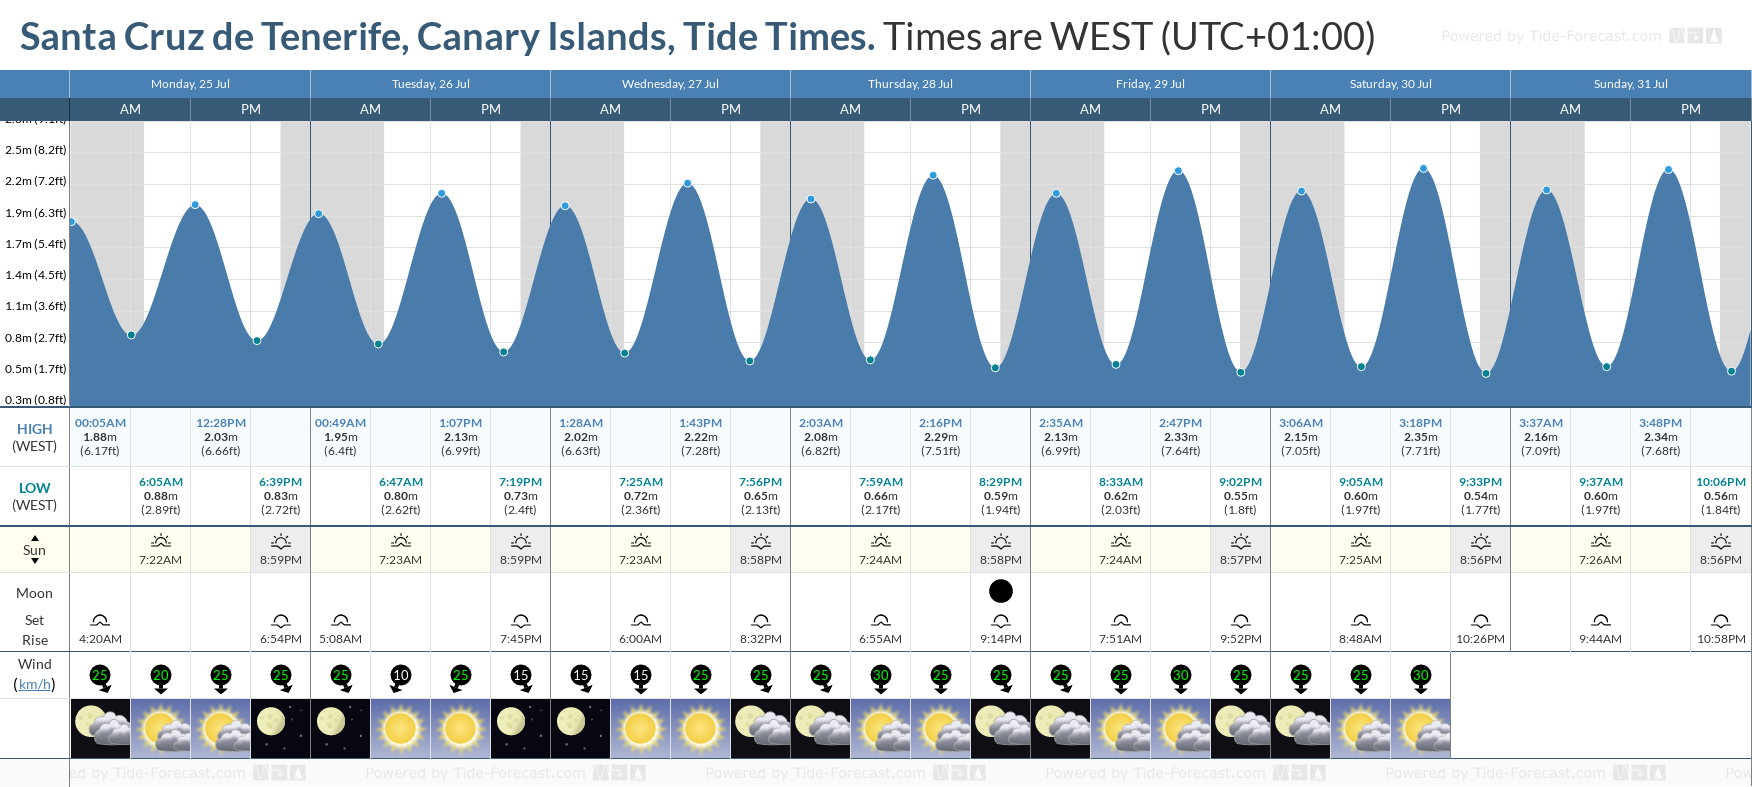 Santa Cruz de Tenerife, Canary Islands Tide Chart including high and low tide tide times for the next 7 days